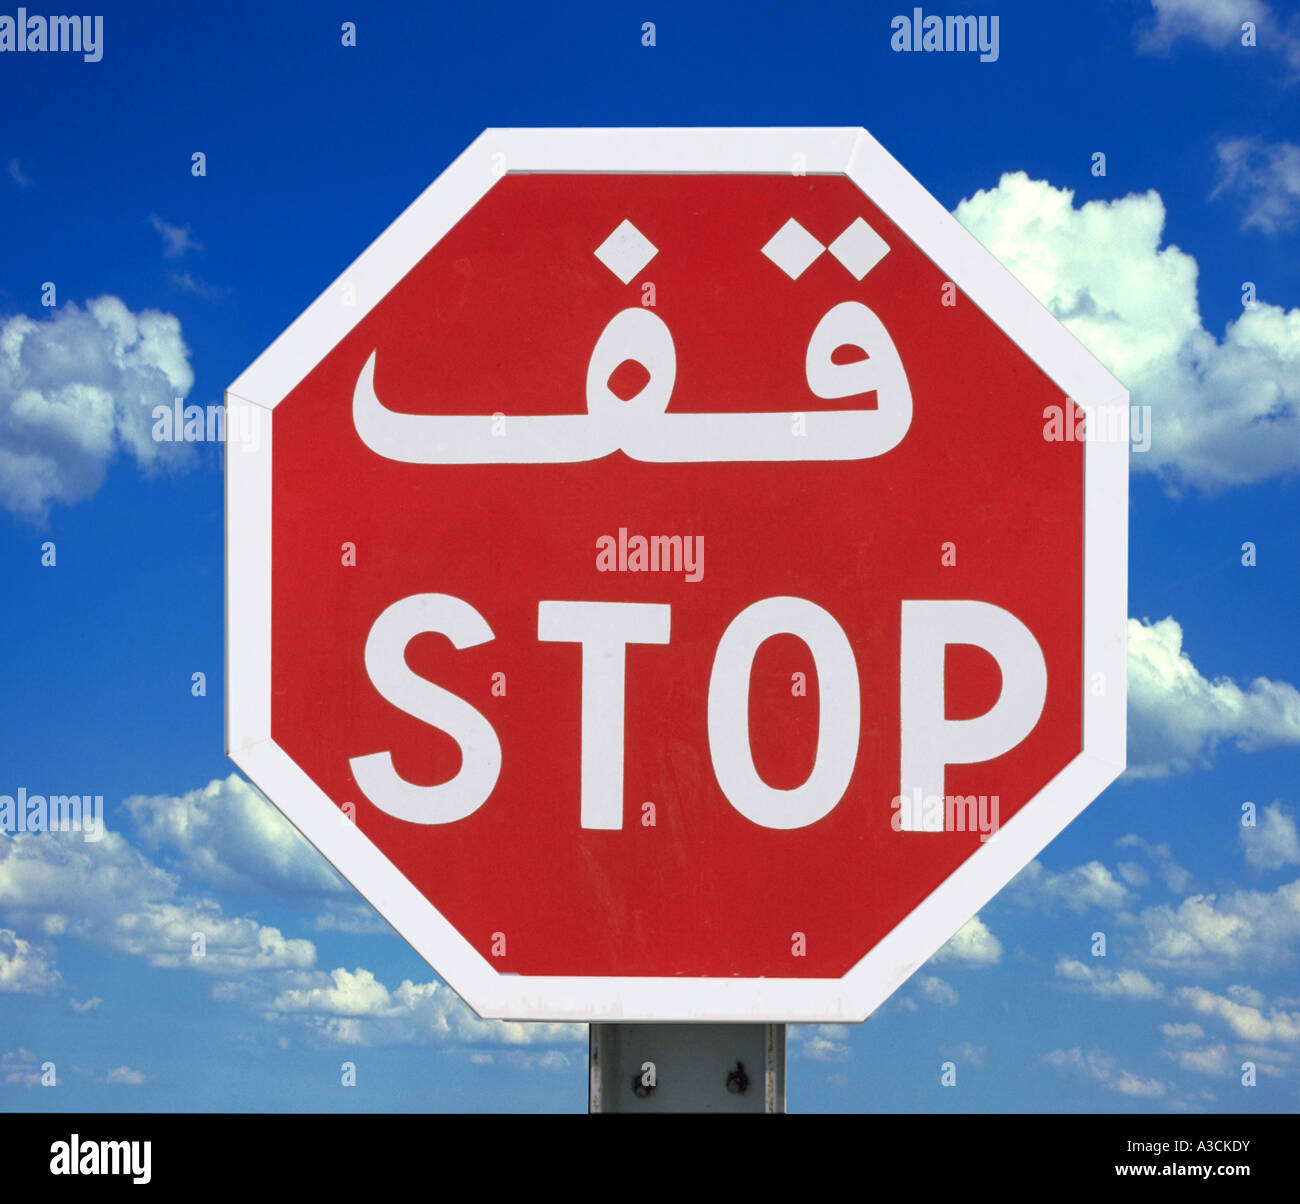 traafic sign Stop in Tunesia, Tunisia - Stock Image